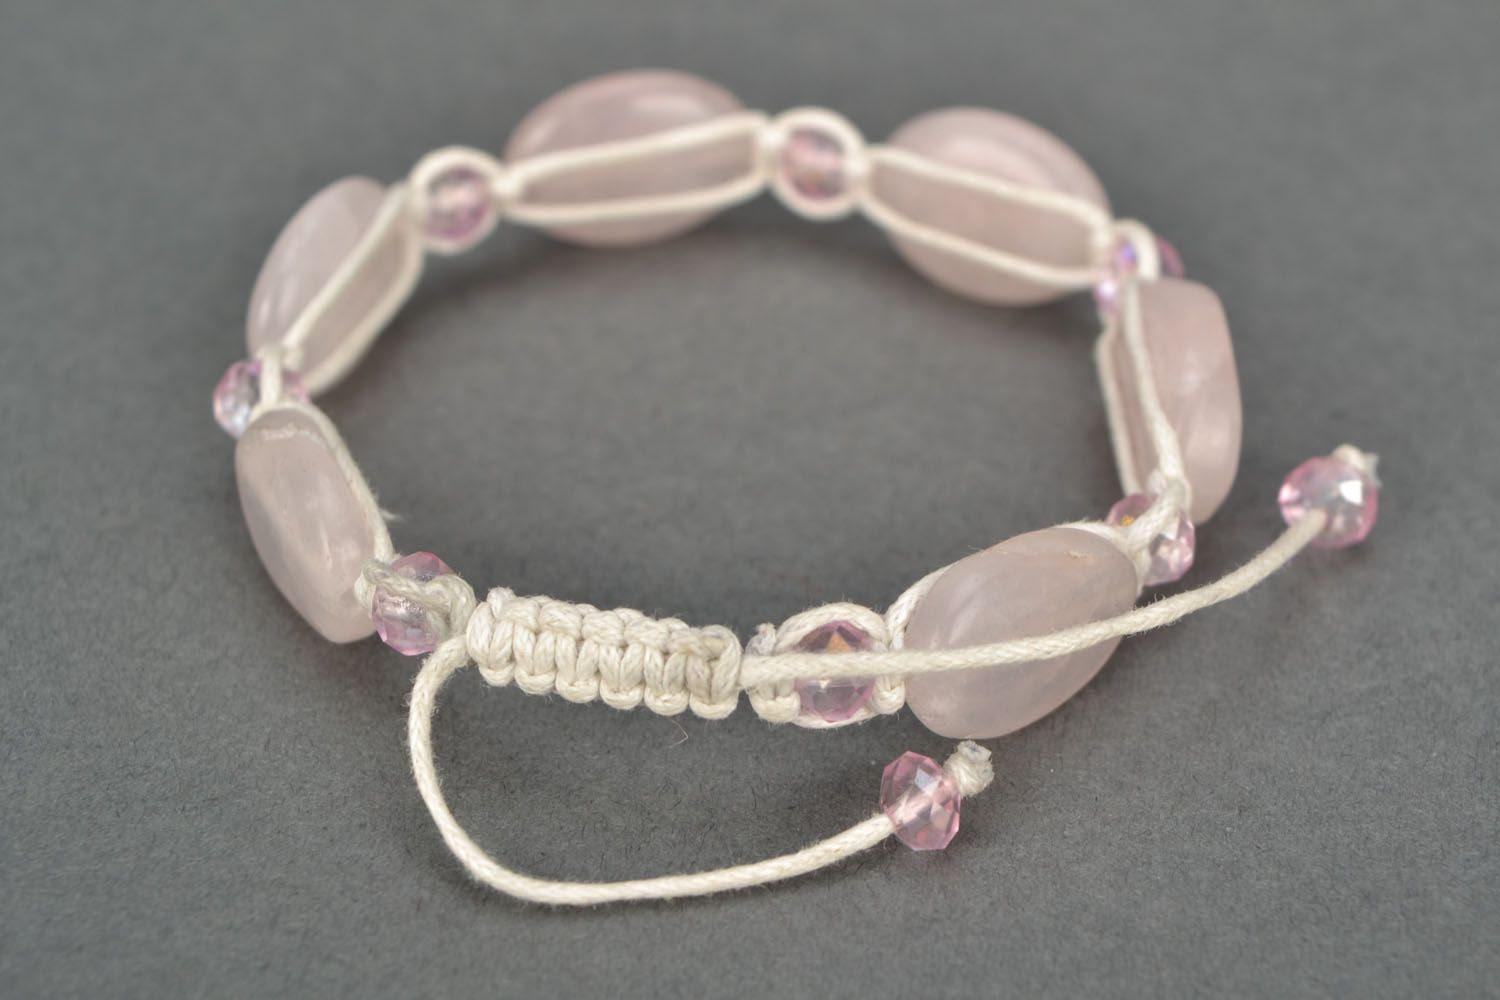 Homemade bracelet with pink quartz photo 4